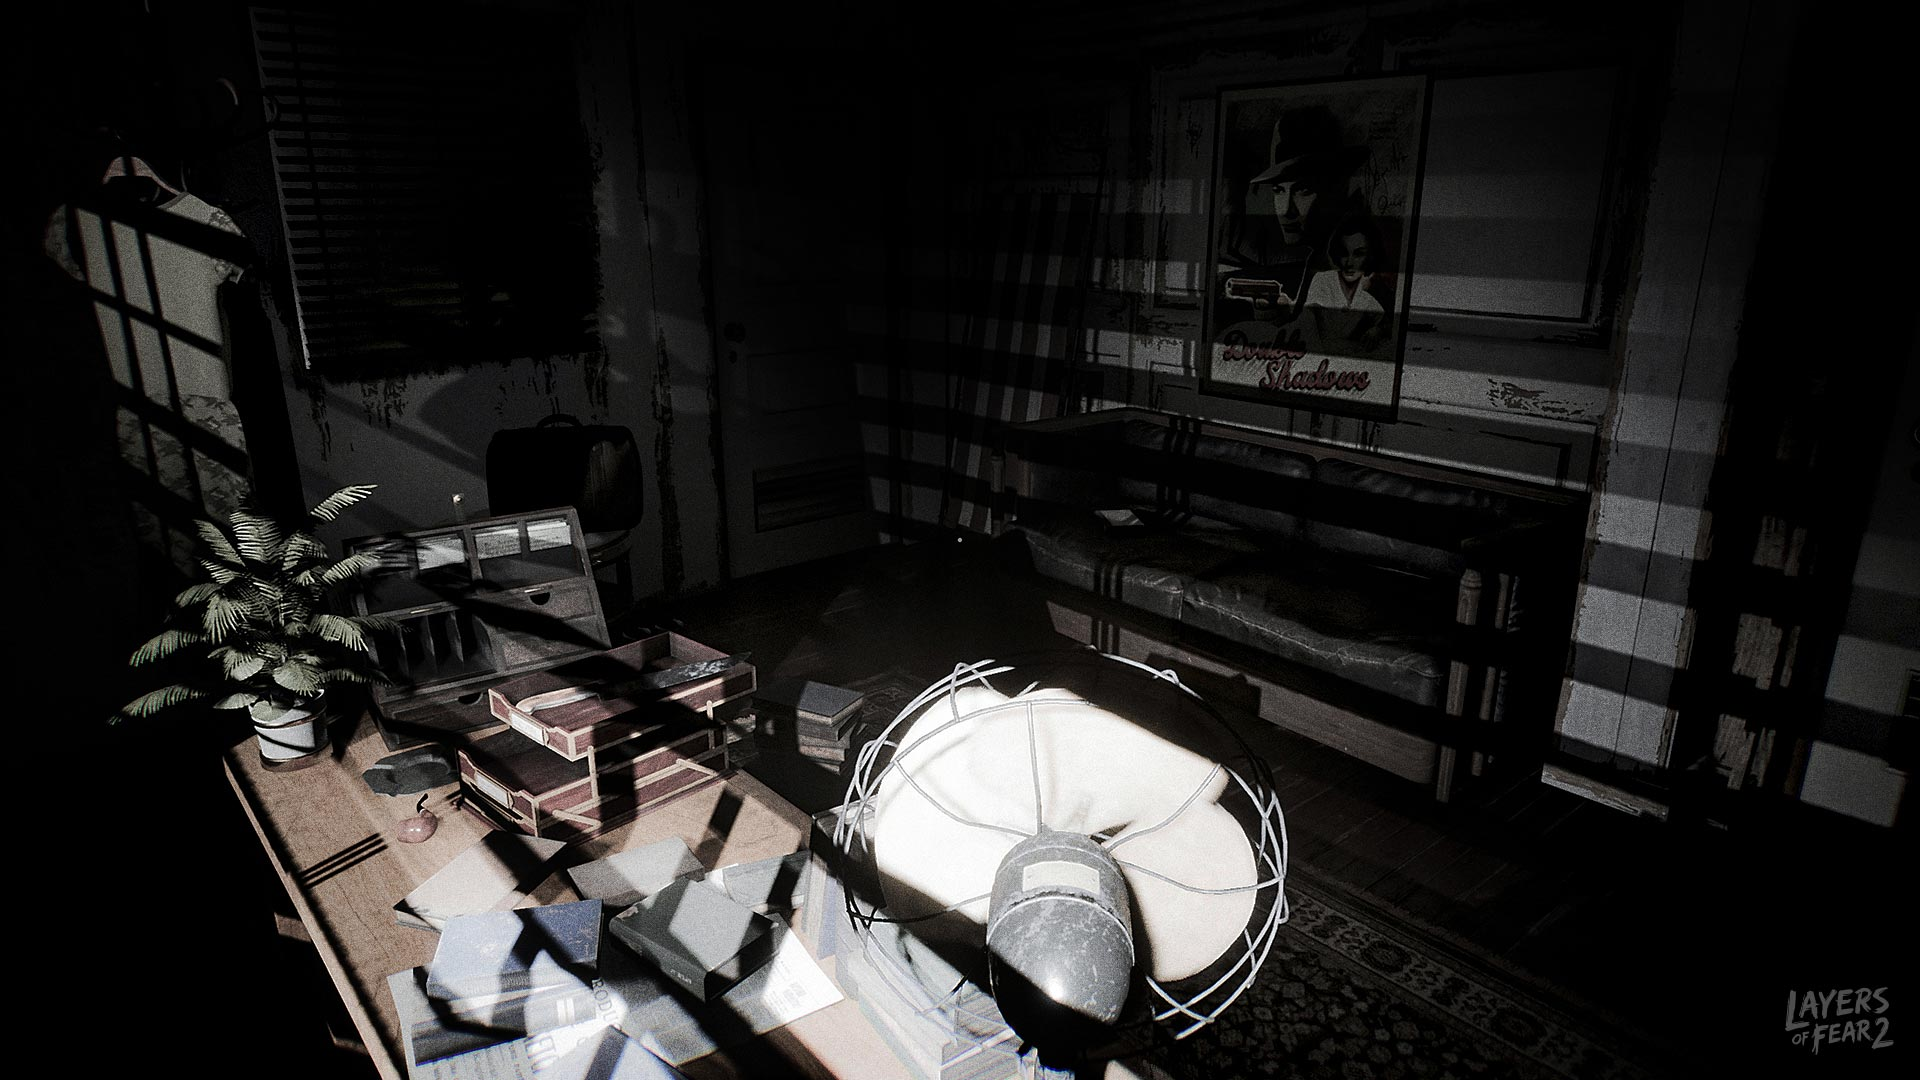 The story unravels through the use of classic projectors and phonographs, along with items you can pick up and inspect.